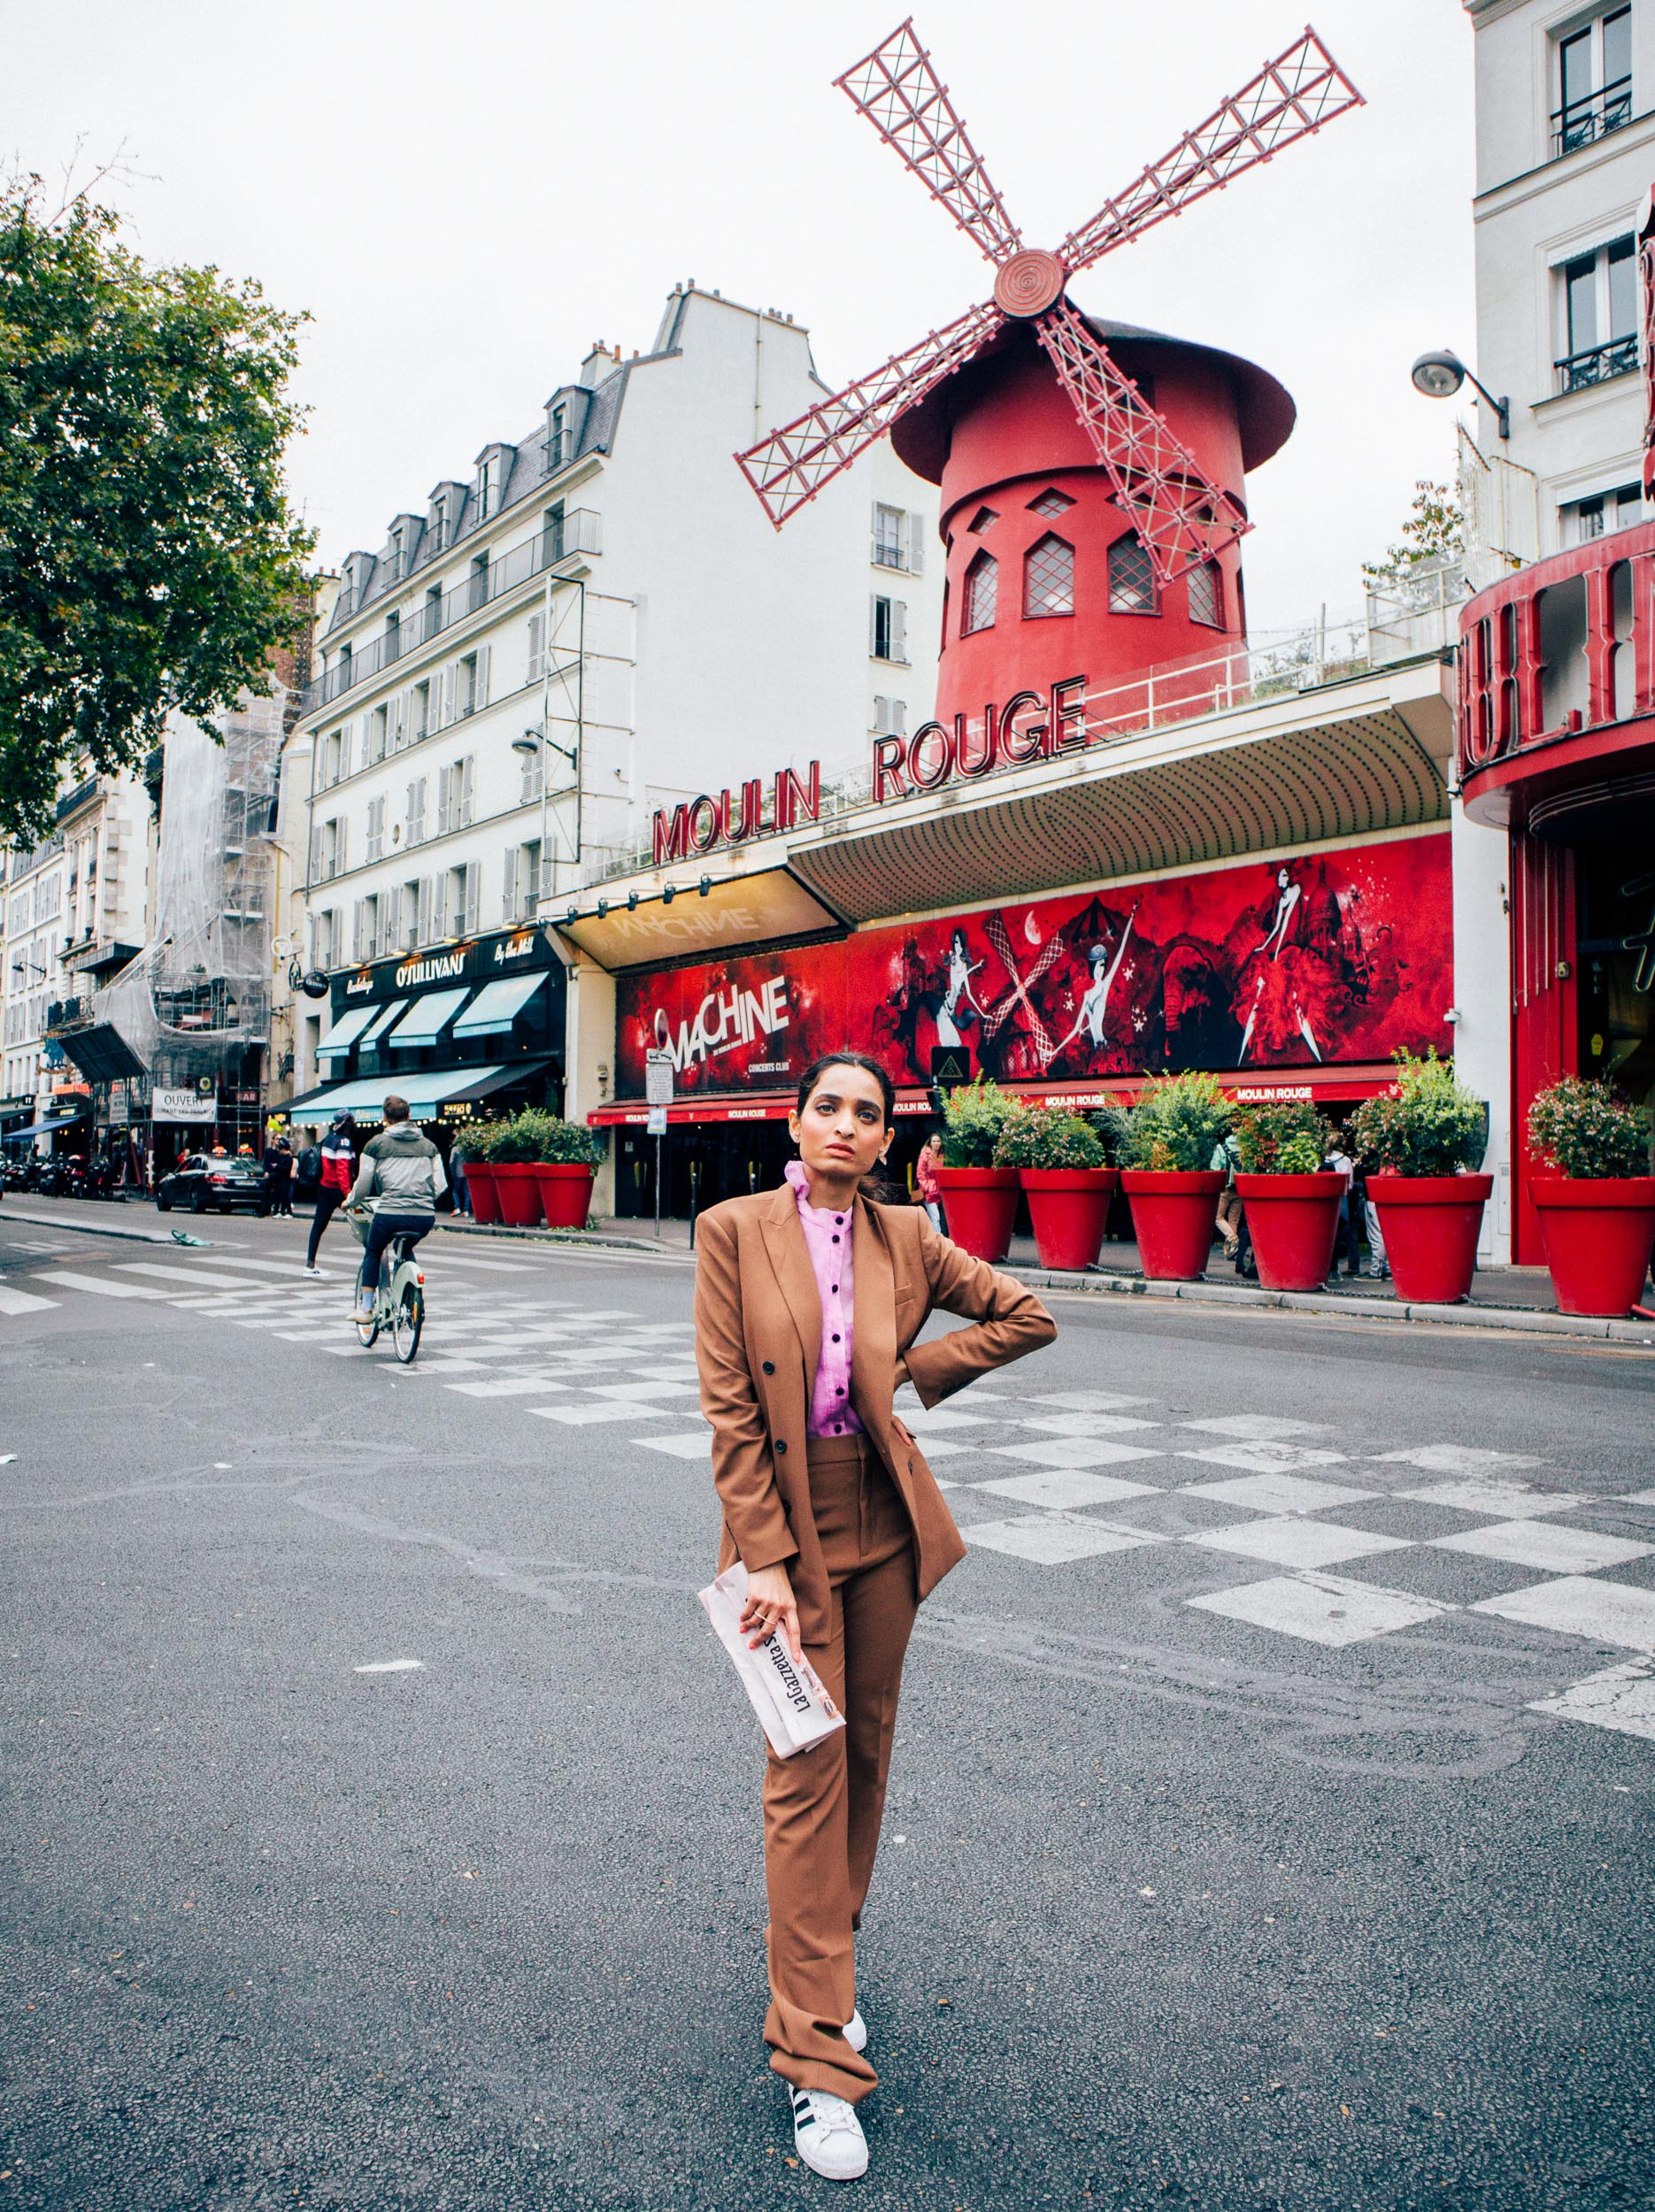 Girl travel blogger and fashion blogger wearing camel coloured suit with lavender shirt standing in front of the Moulin Rogue in Paris for Paris travel guide